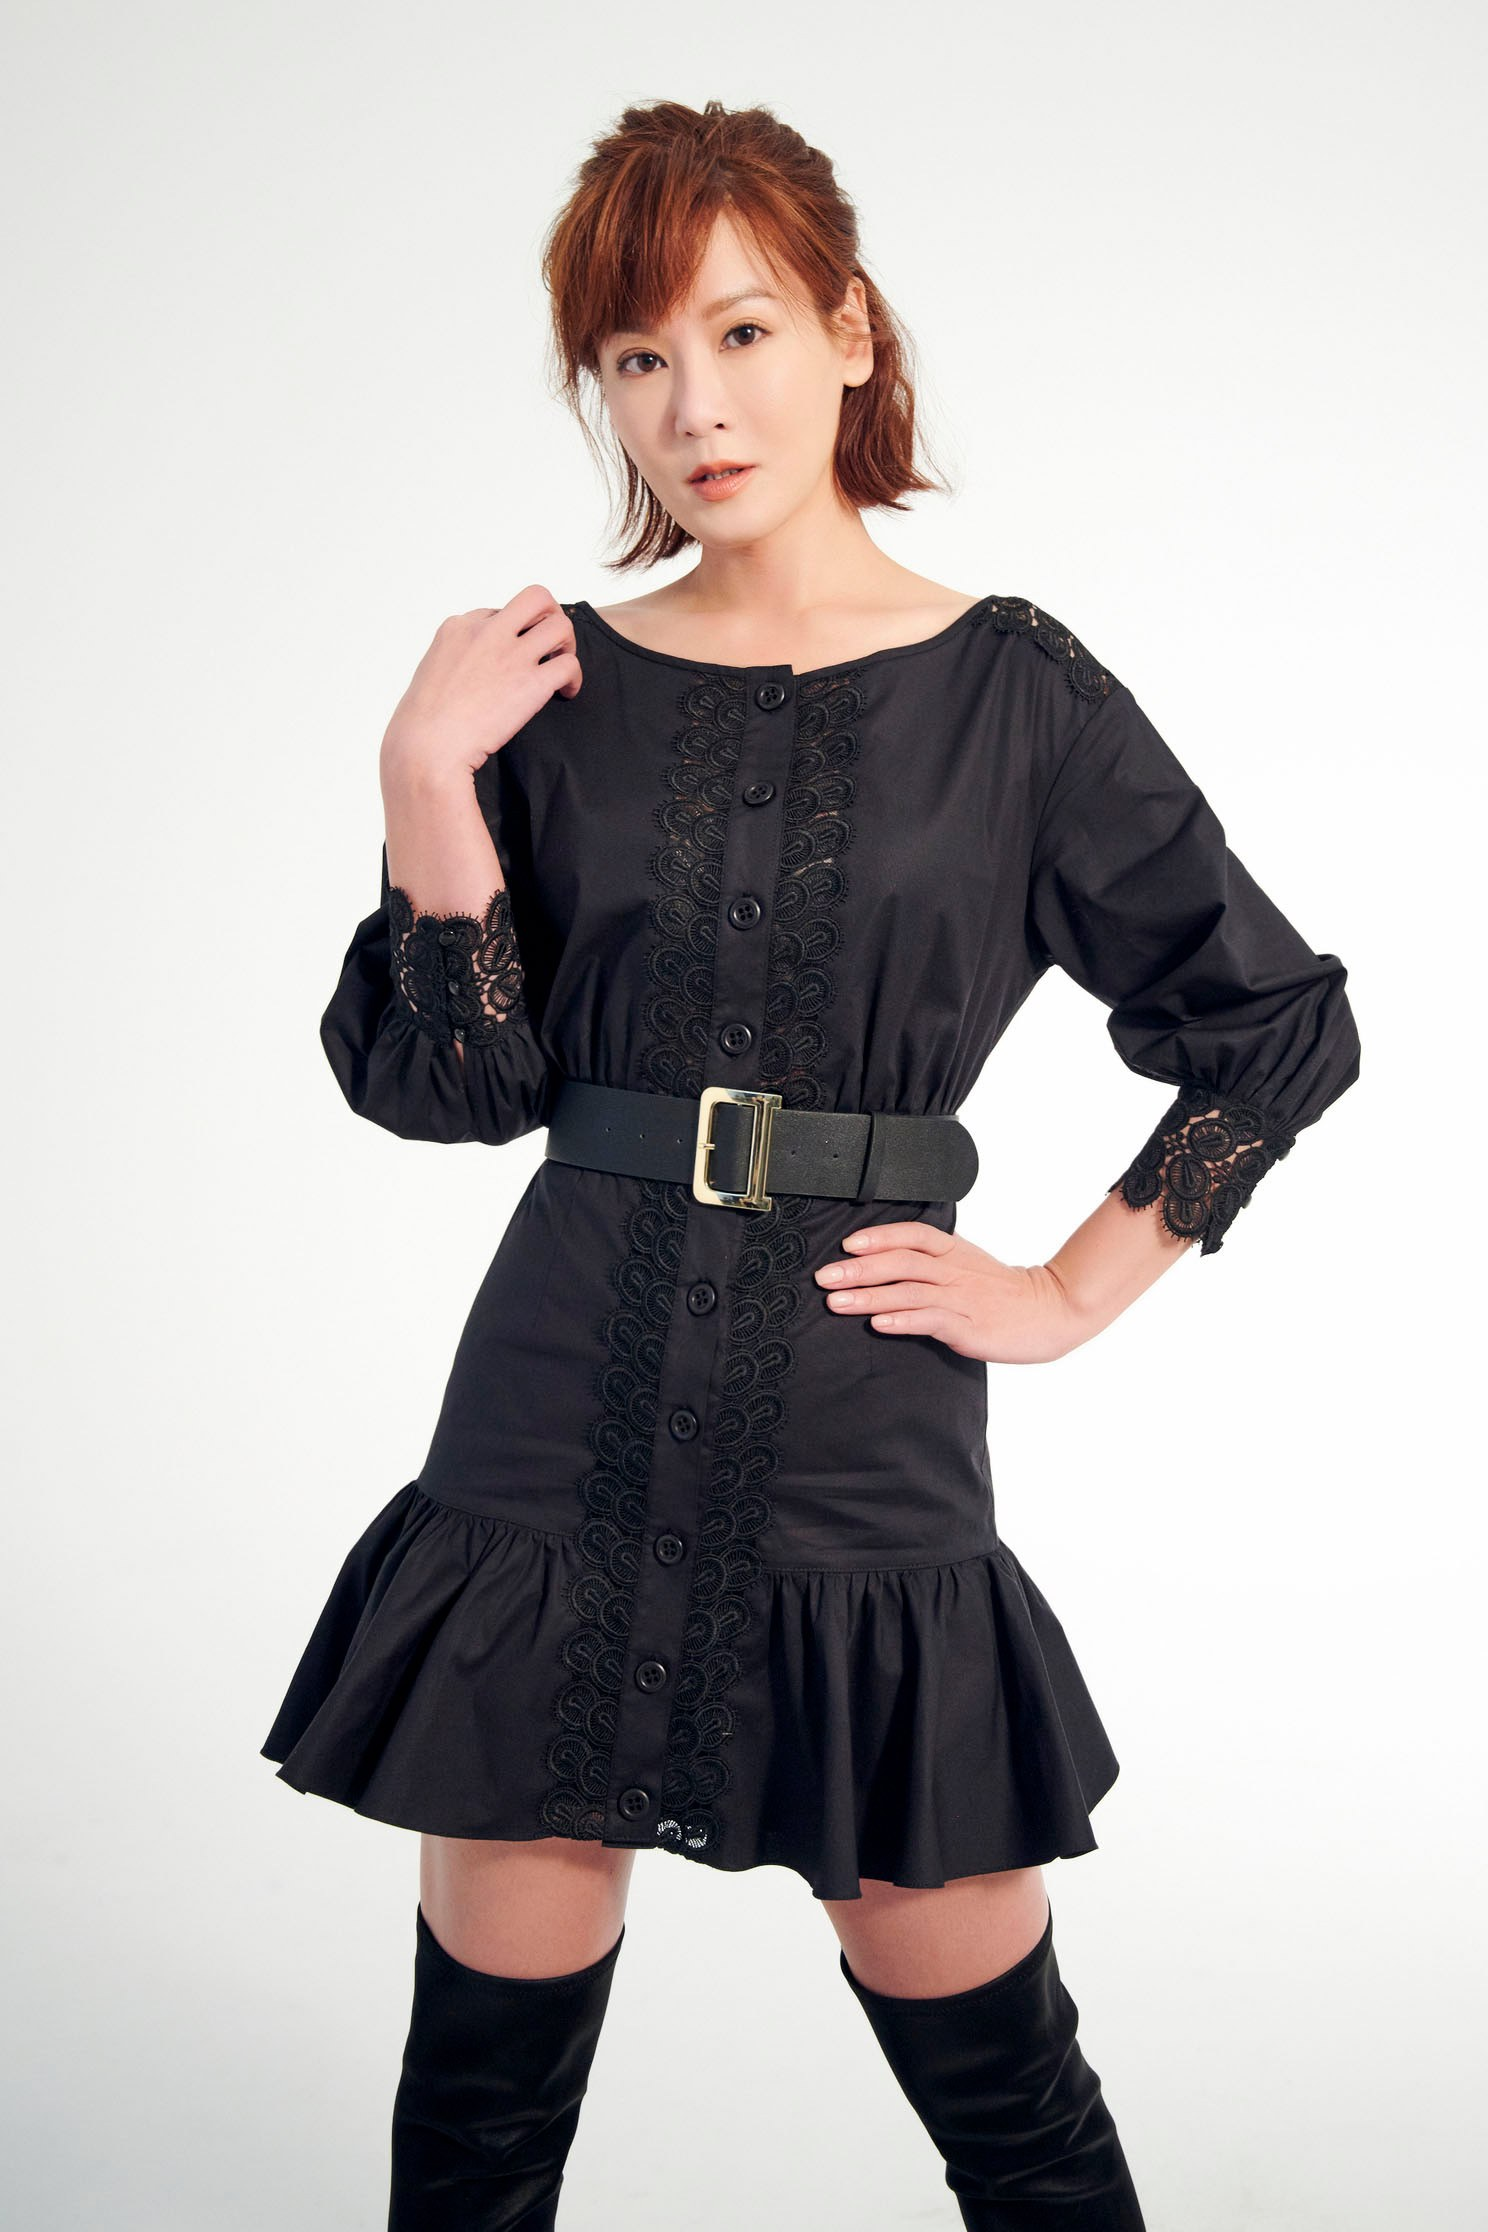 Lace embroidered ruffle dress,dress,embroidery,embroiderddress,onlinelimitededition,cocktaildress,valentine,embroidered,lace,lacedress,blackdress